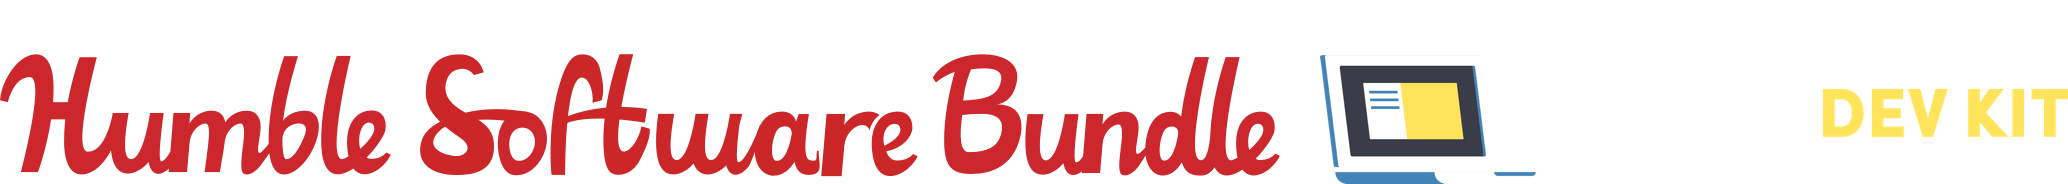 The Humble Software Bundle: Python Dev Kit